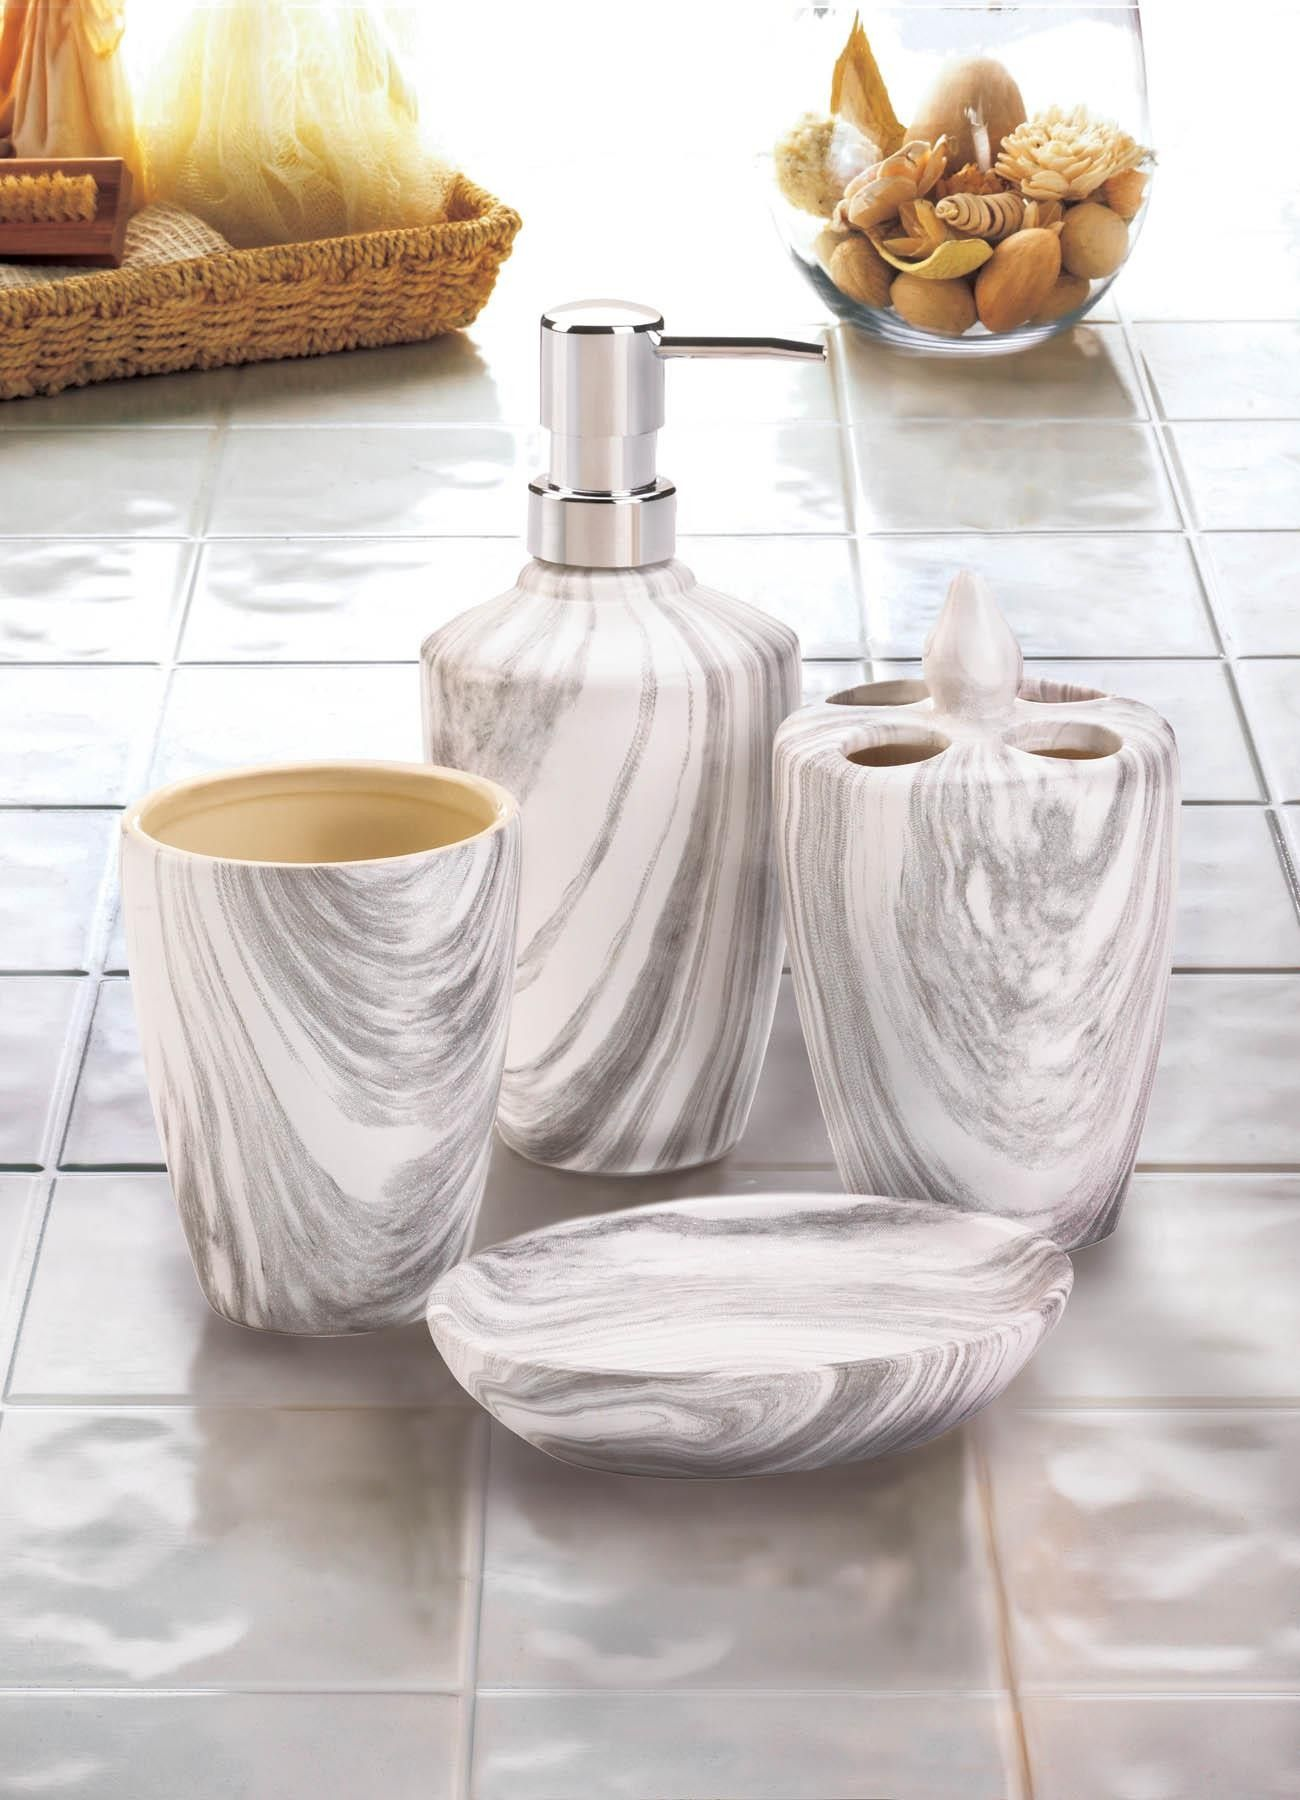 Marble Printed Bath Accessory Set 19 95 In Stock Type 10018749 In